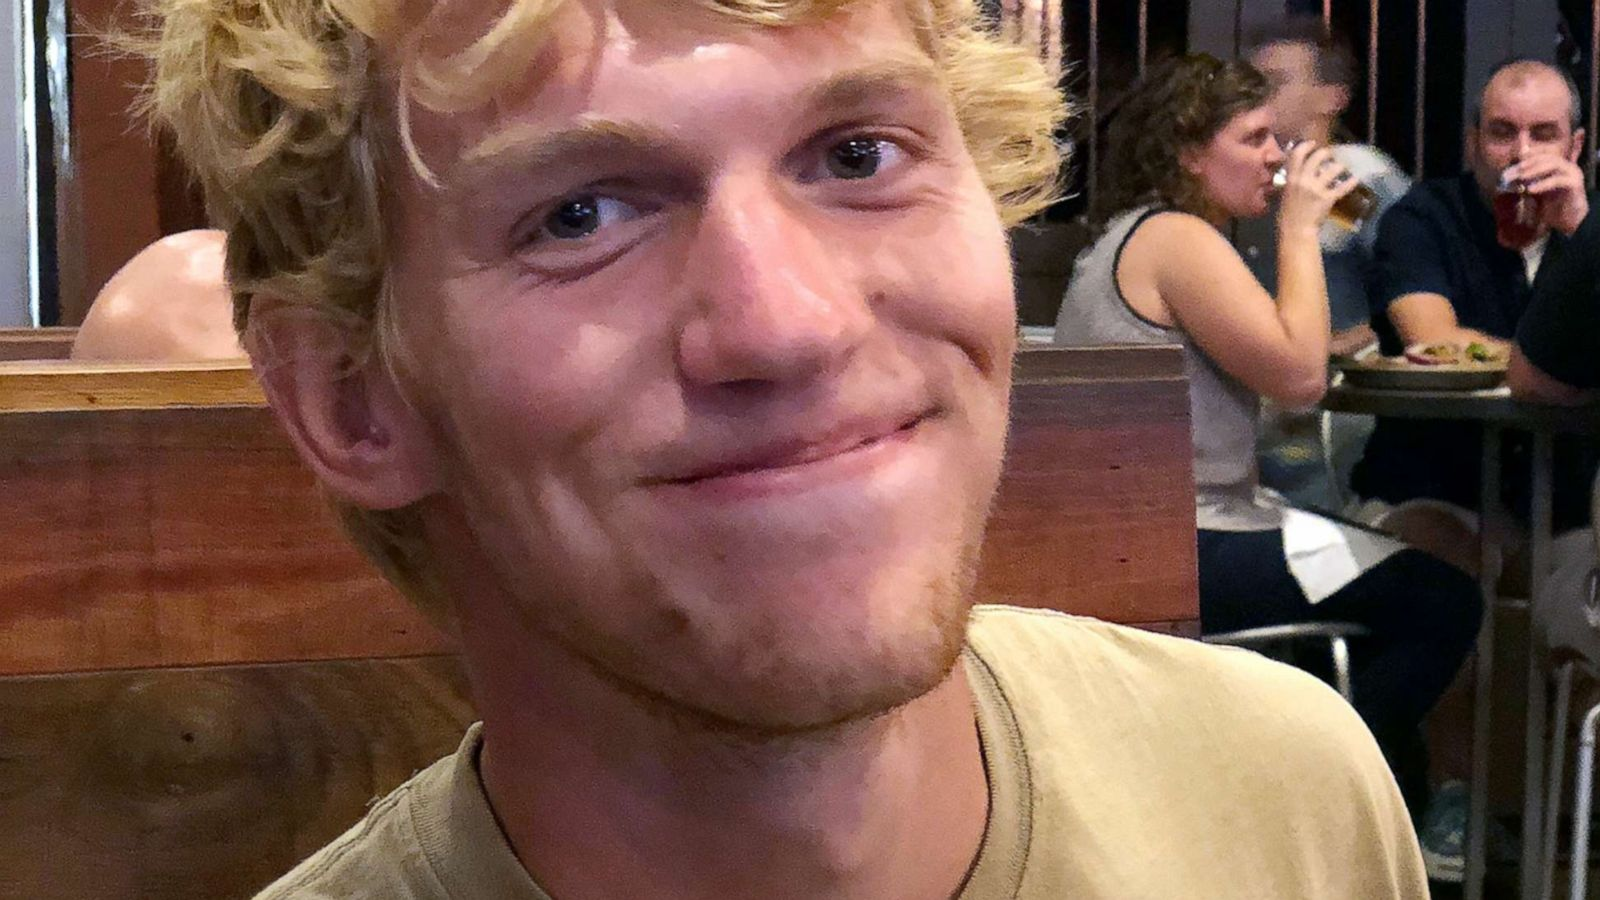 Unc Shooting Victim Riley Howell Honored With Star Wars Character Abc News